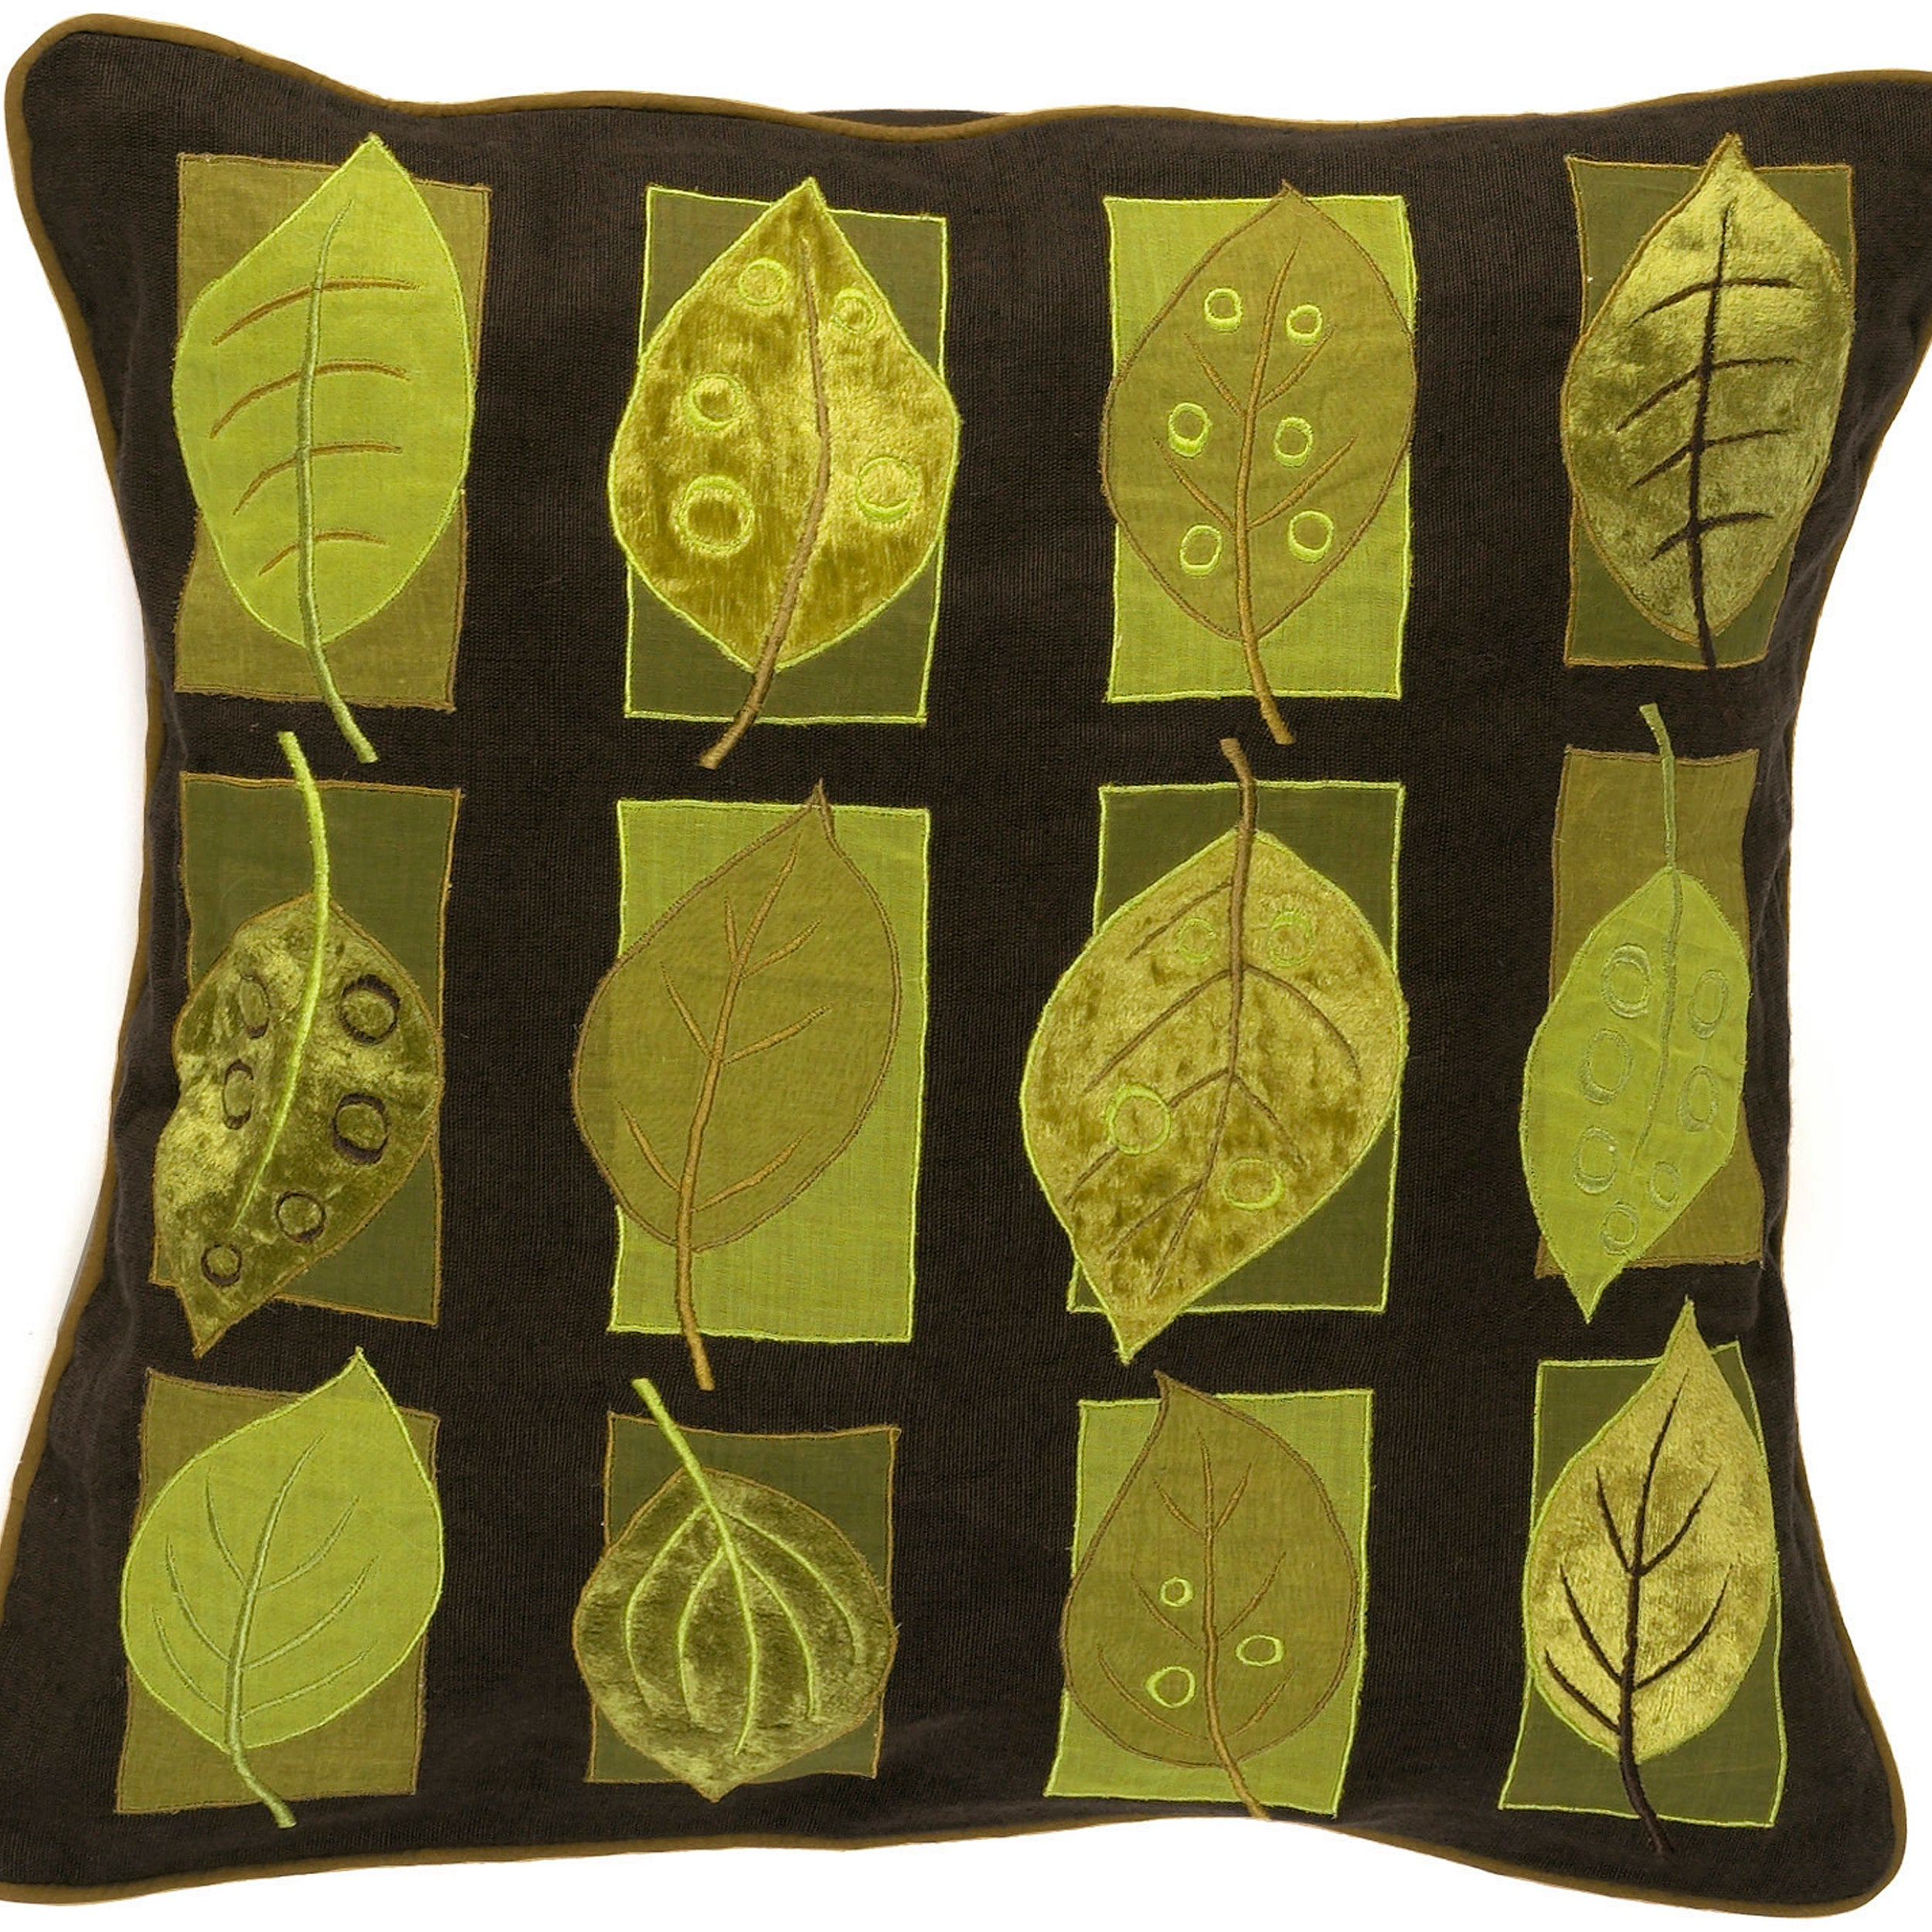 Surya Green Leaves 22-inch Decorative Throw Pillow (Down)